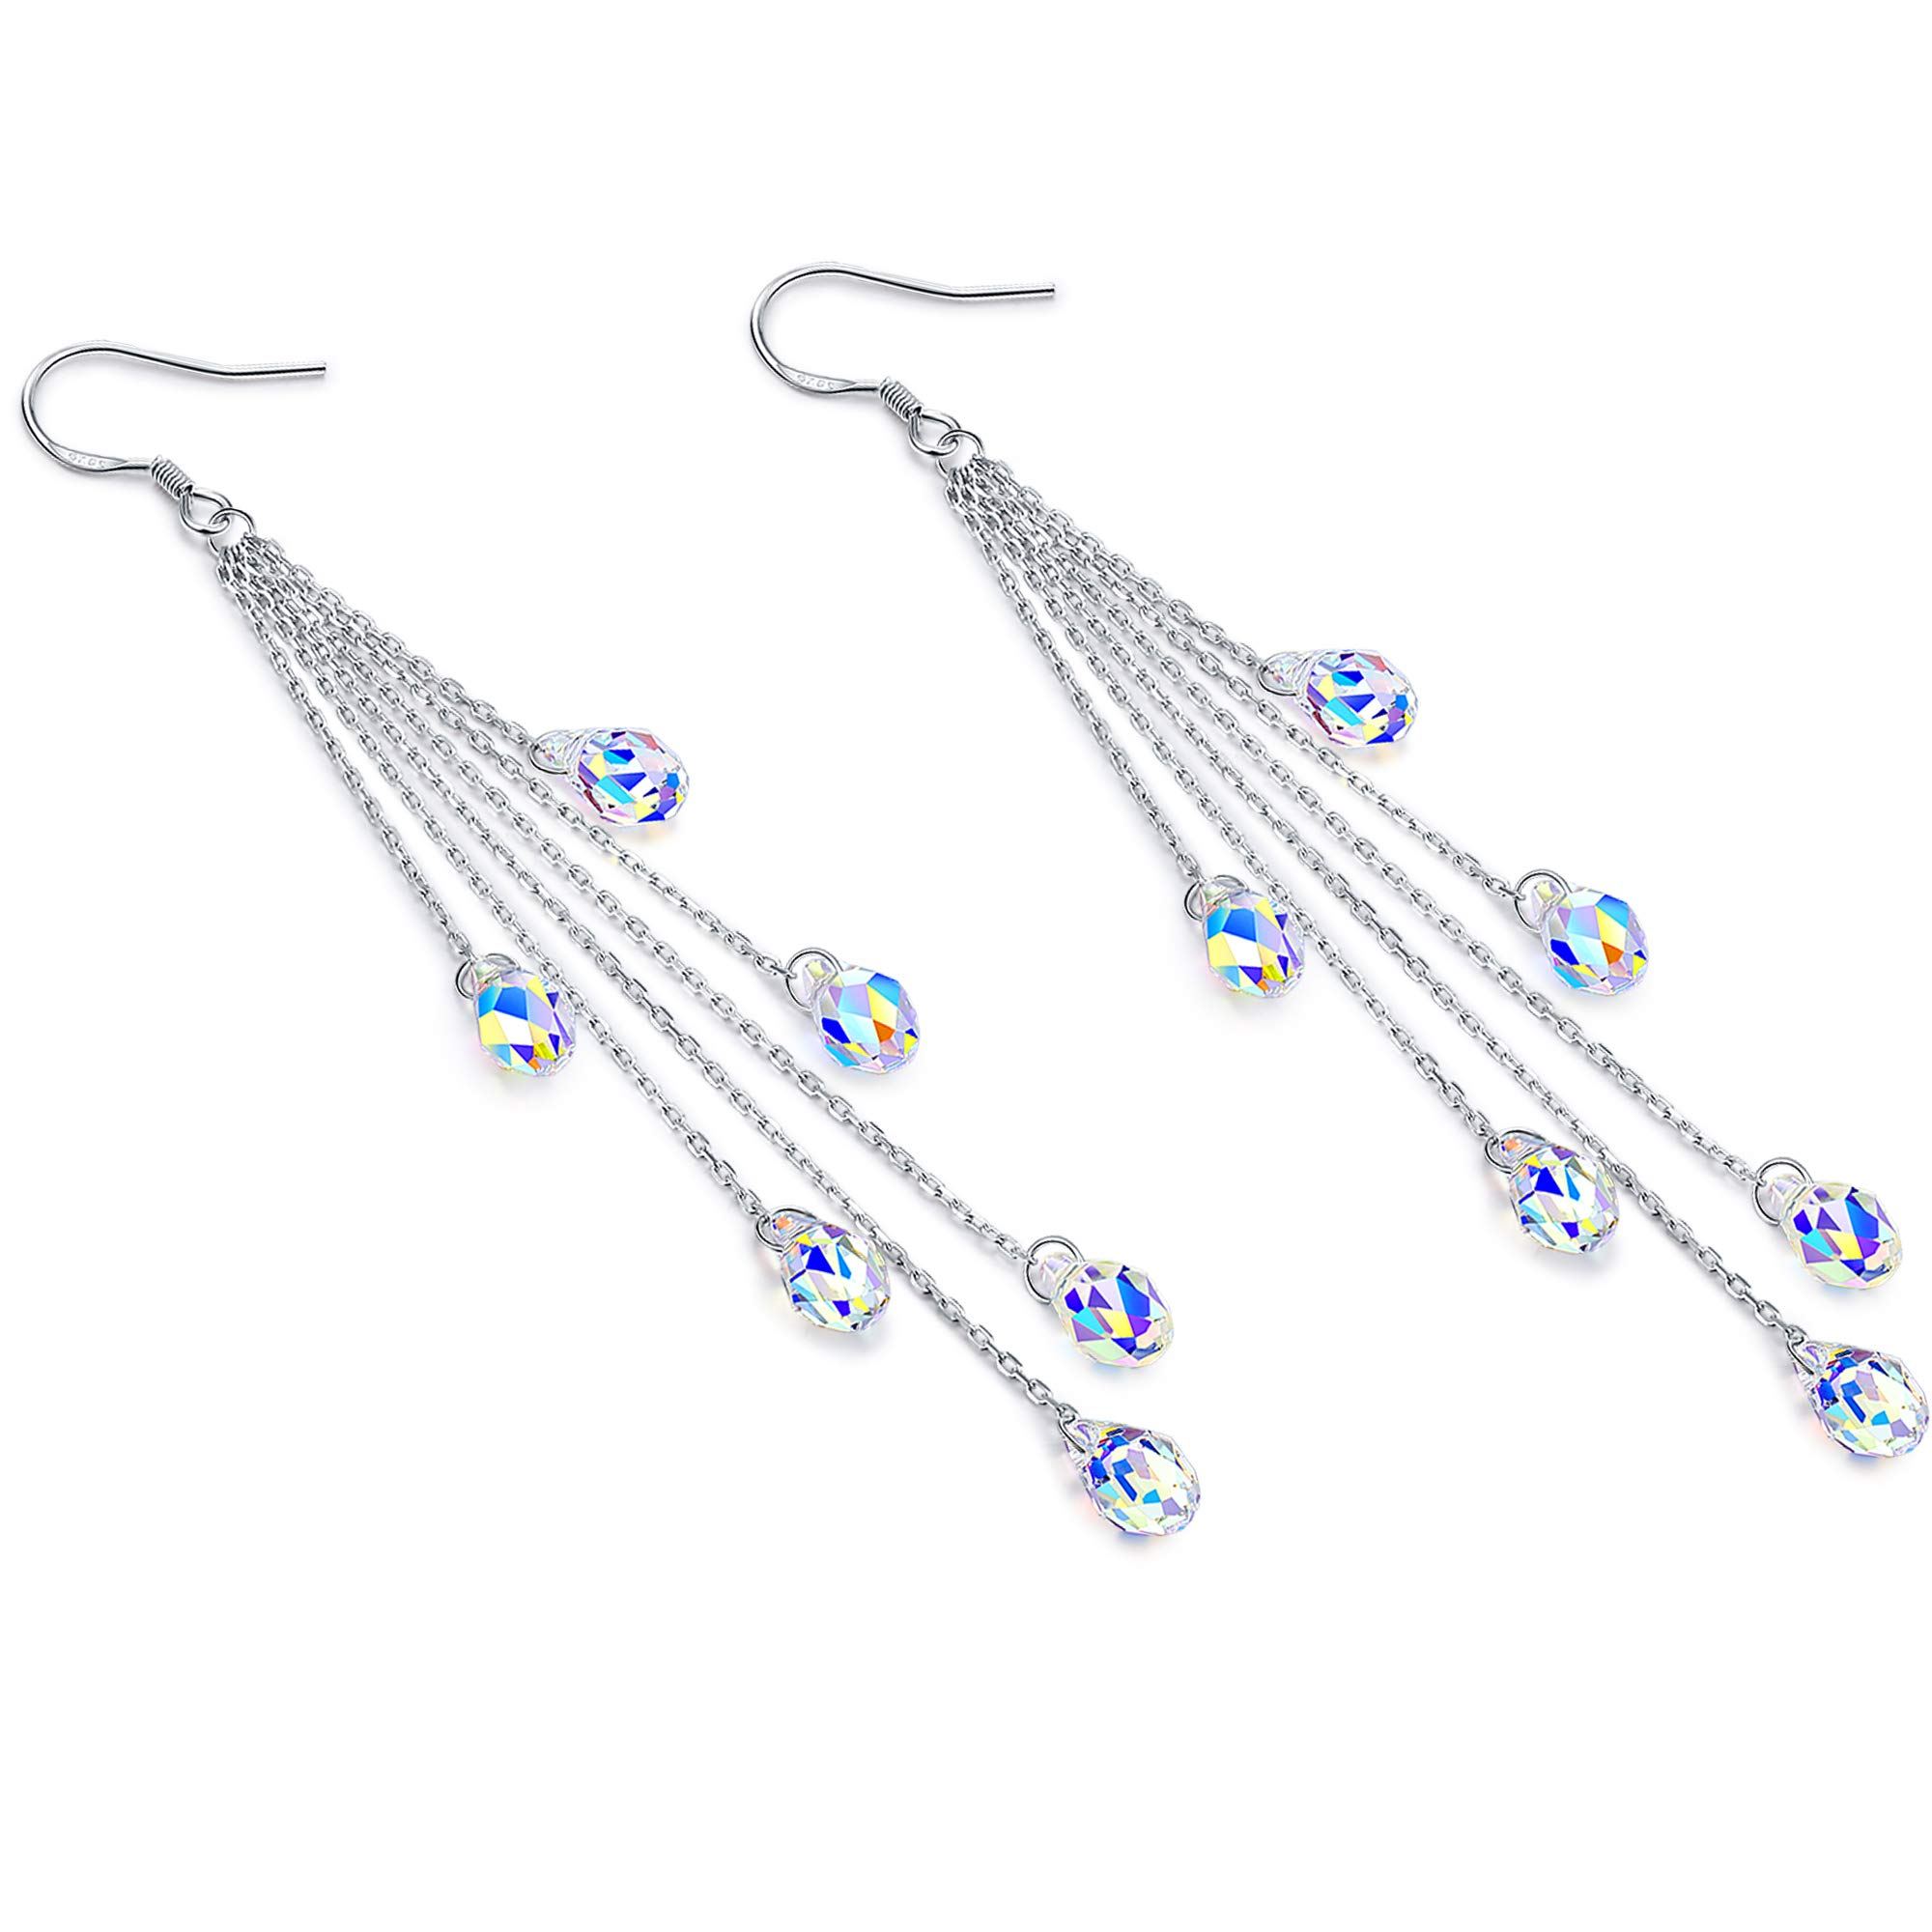 DESIMTION Long Teardrop Dangle Earrings,Sterling Silver Earrings for Women Made with Swarovski Crystals by DESIMTION